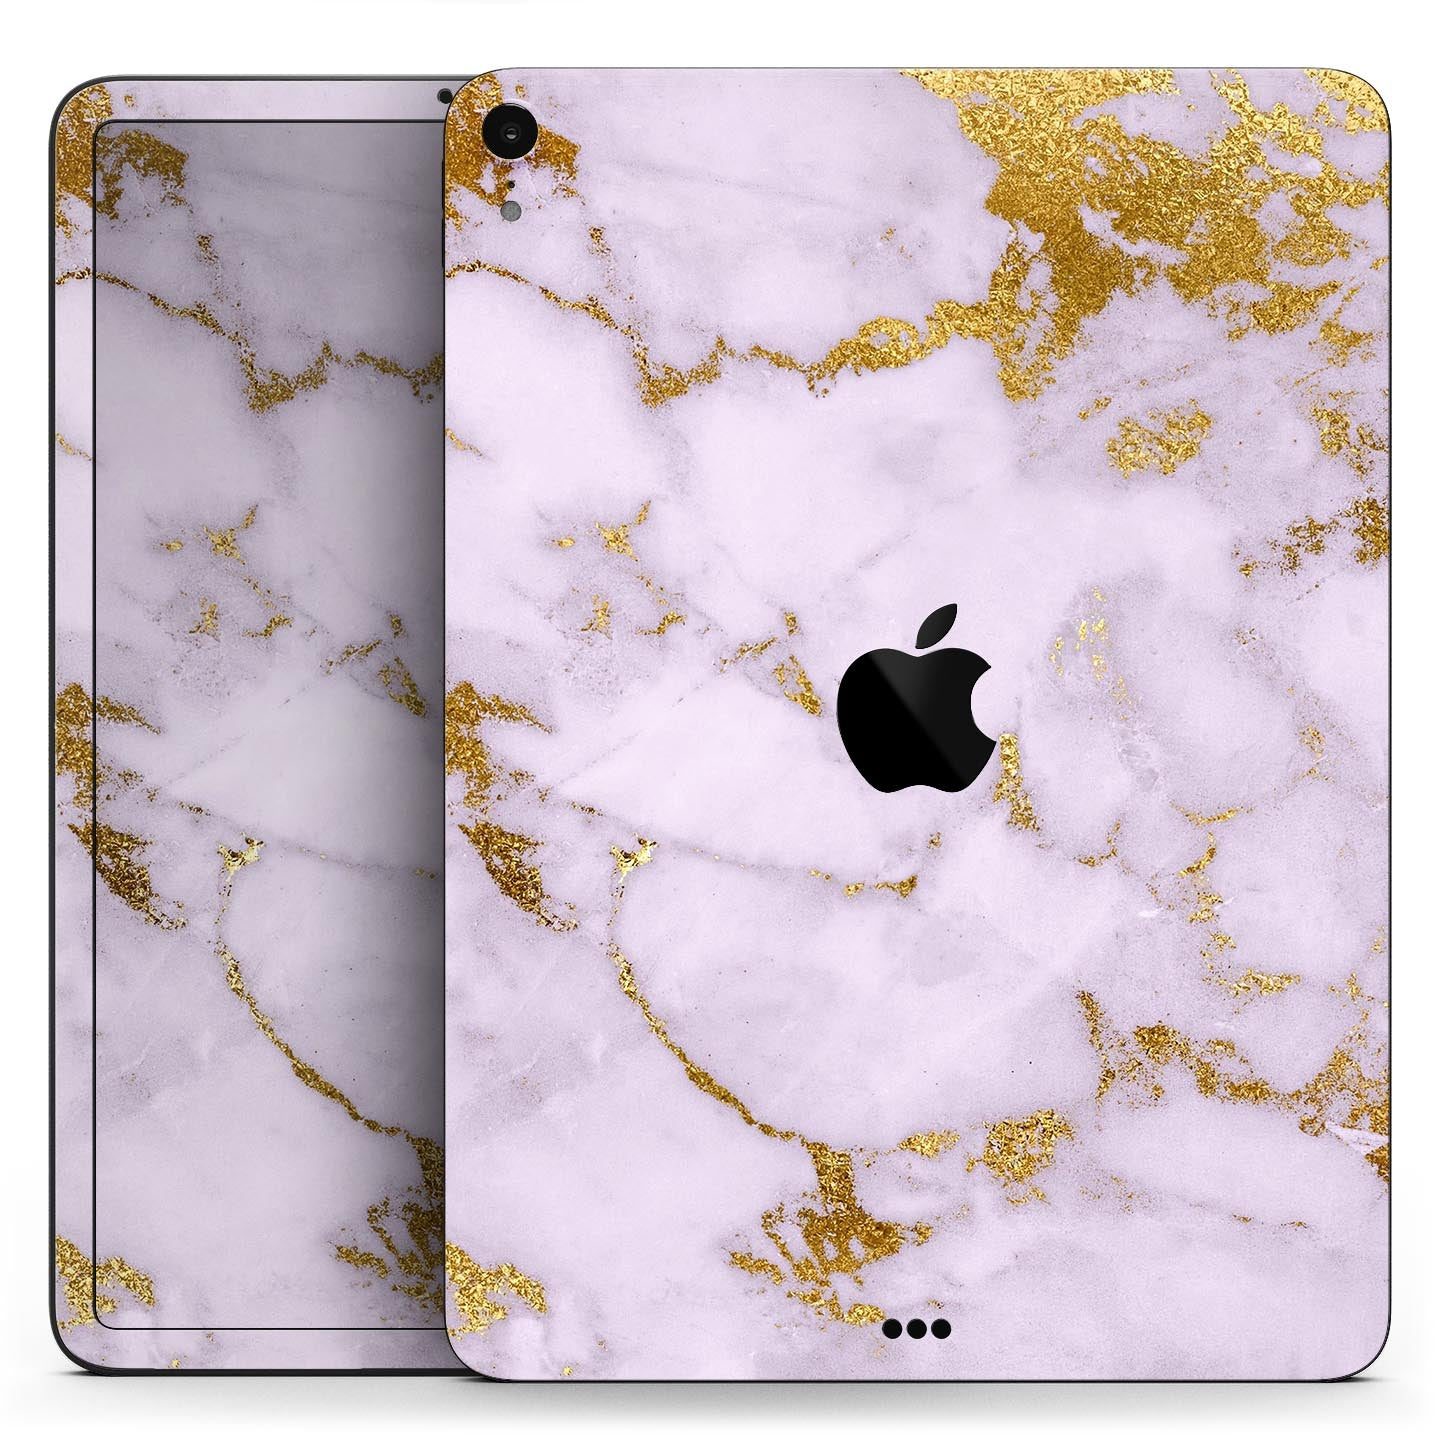 """Purple Marble & Digital Gold Foil V9 - Full Body Skin Decal for the Apple iPad Pro 12.9"""", 11"""", 10.5"""", 9.7"""", Air or Mini (All Models Available)"""